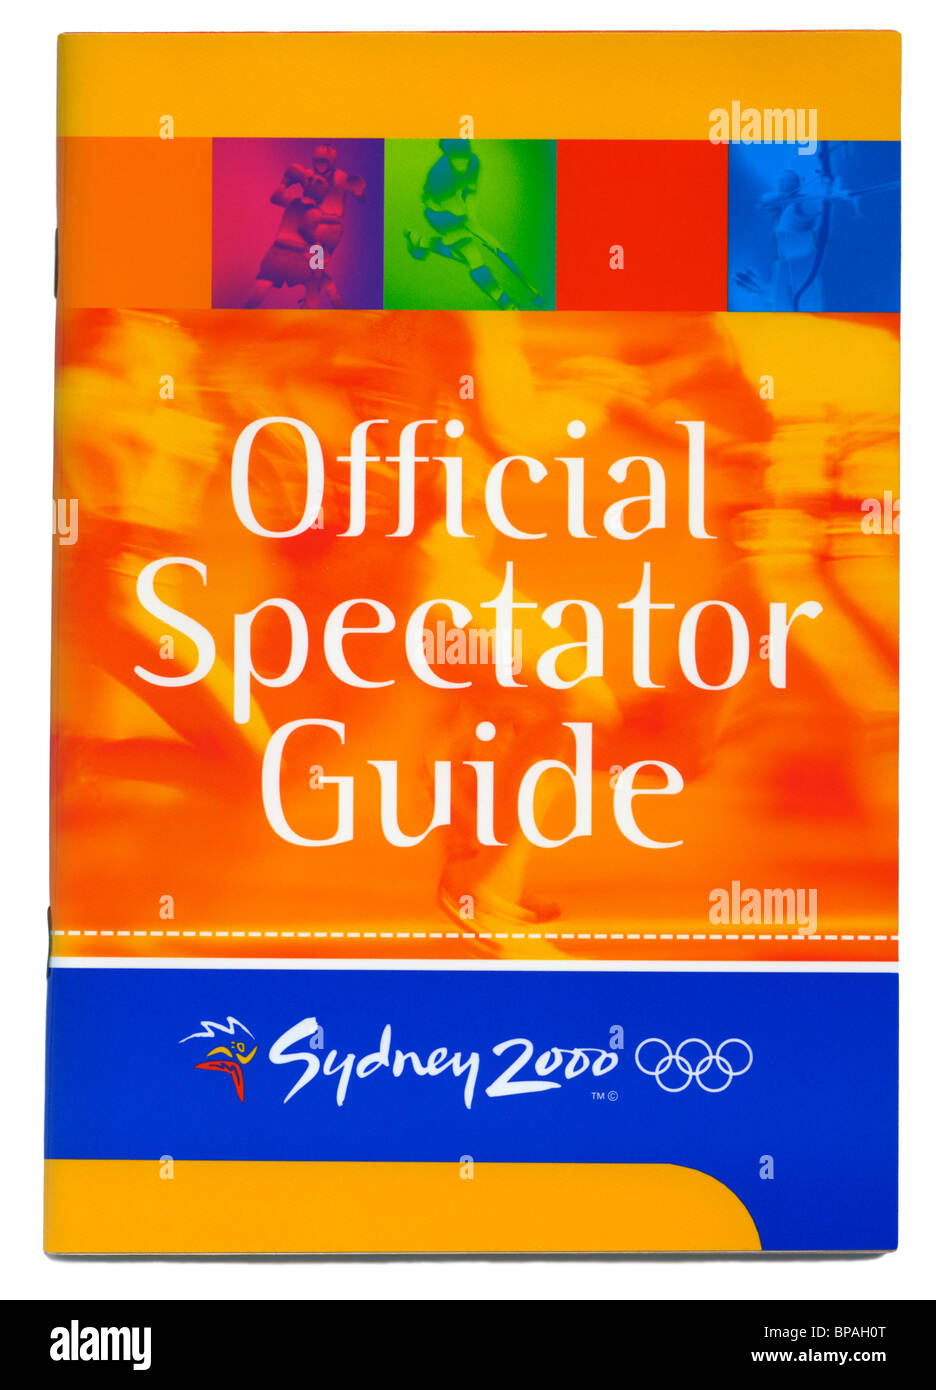 Official Spectator Guide to the 2000 Sydney summer Olympic Games, Sydney, New South Wales, Australia - Stock Image